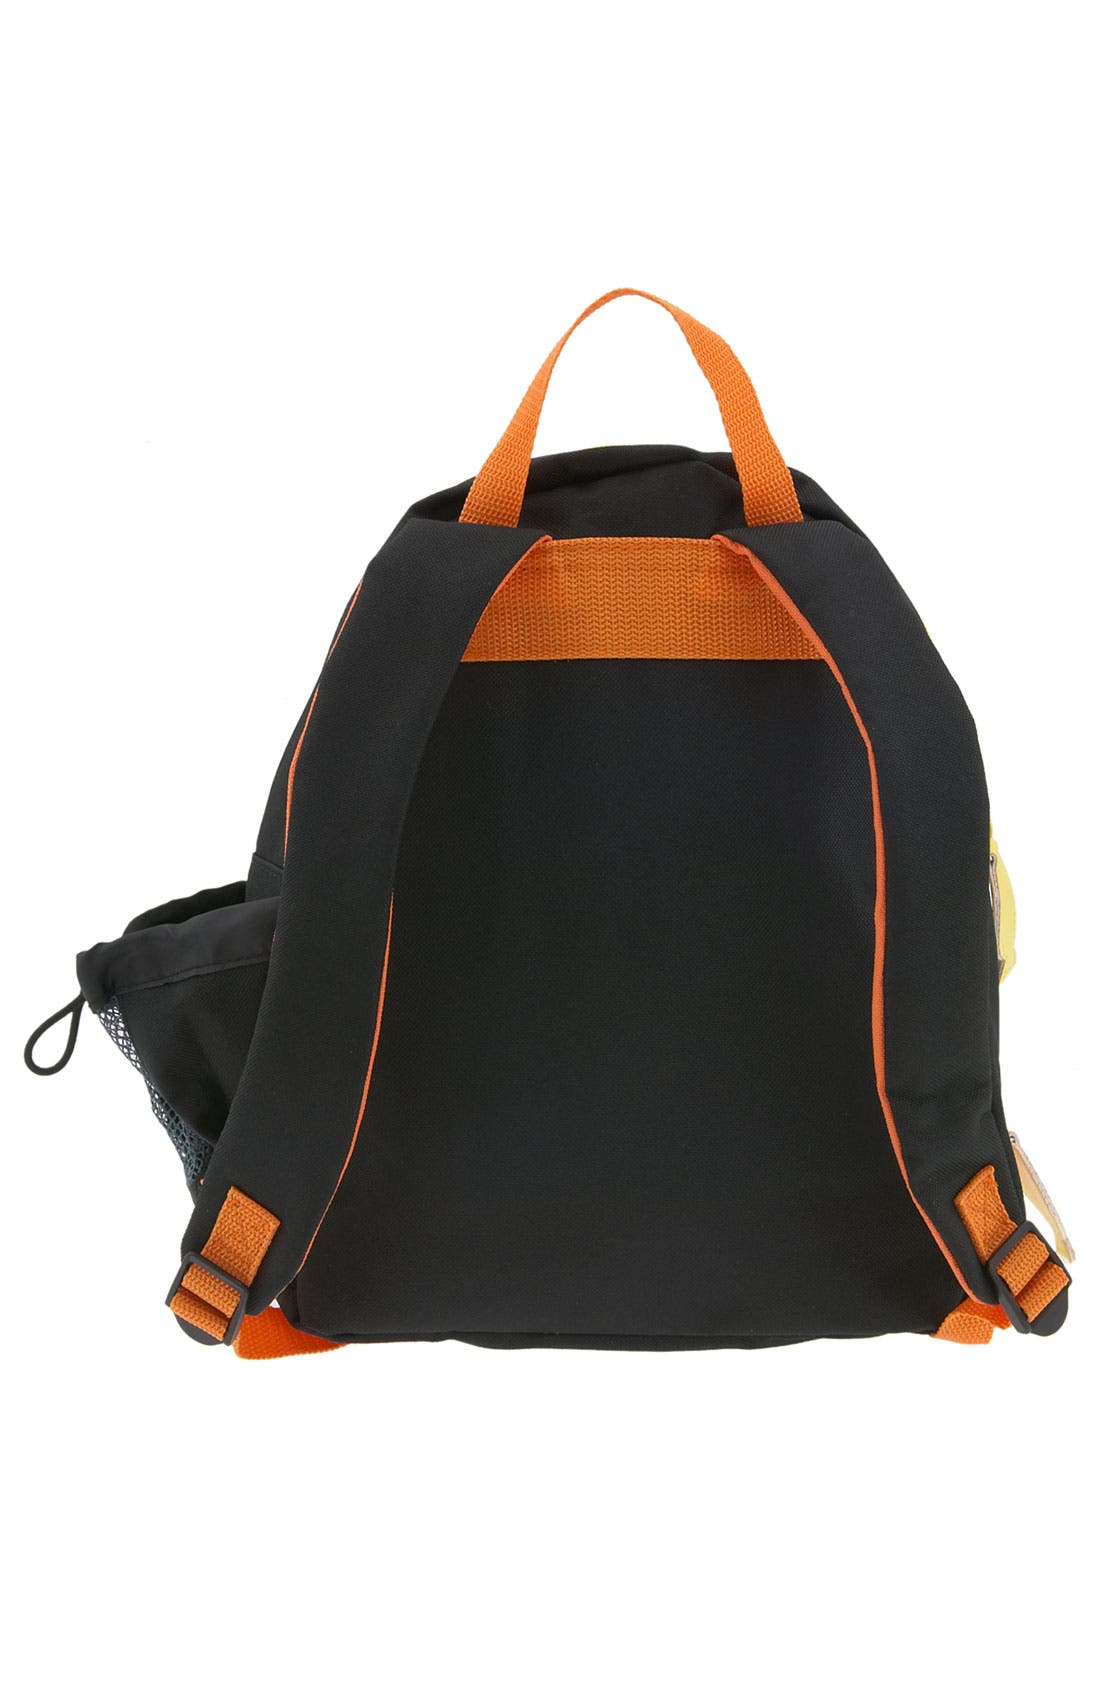 Zoo Pack Backpack,                             Alternate thumbnail 98, color,